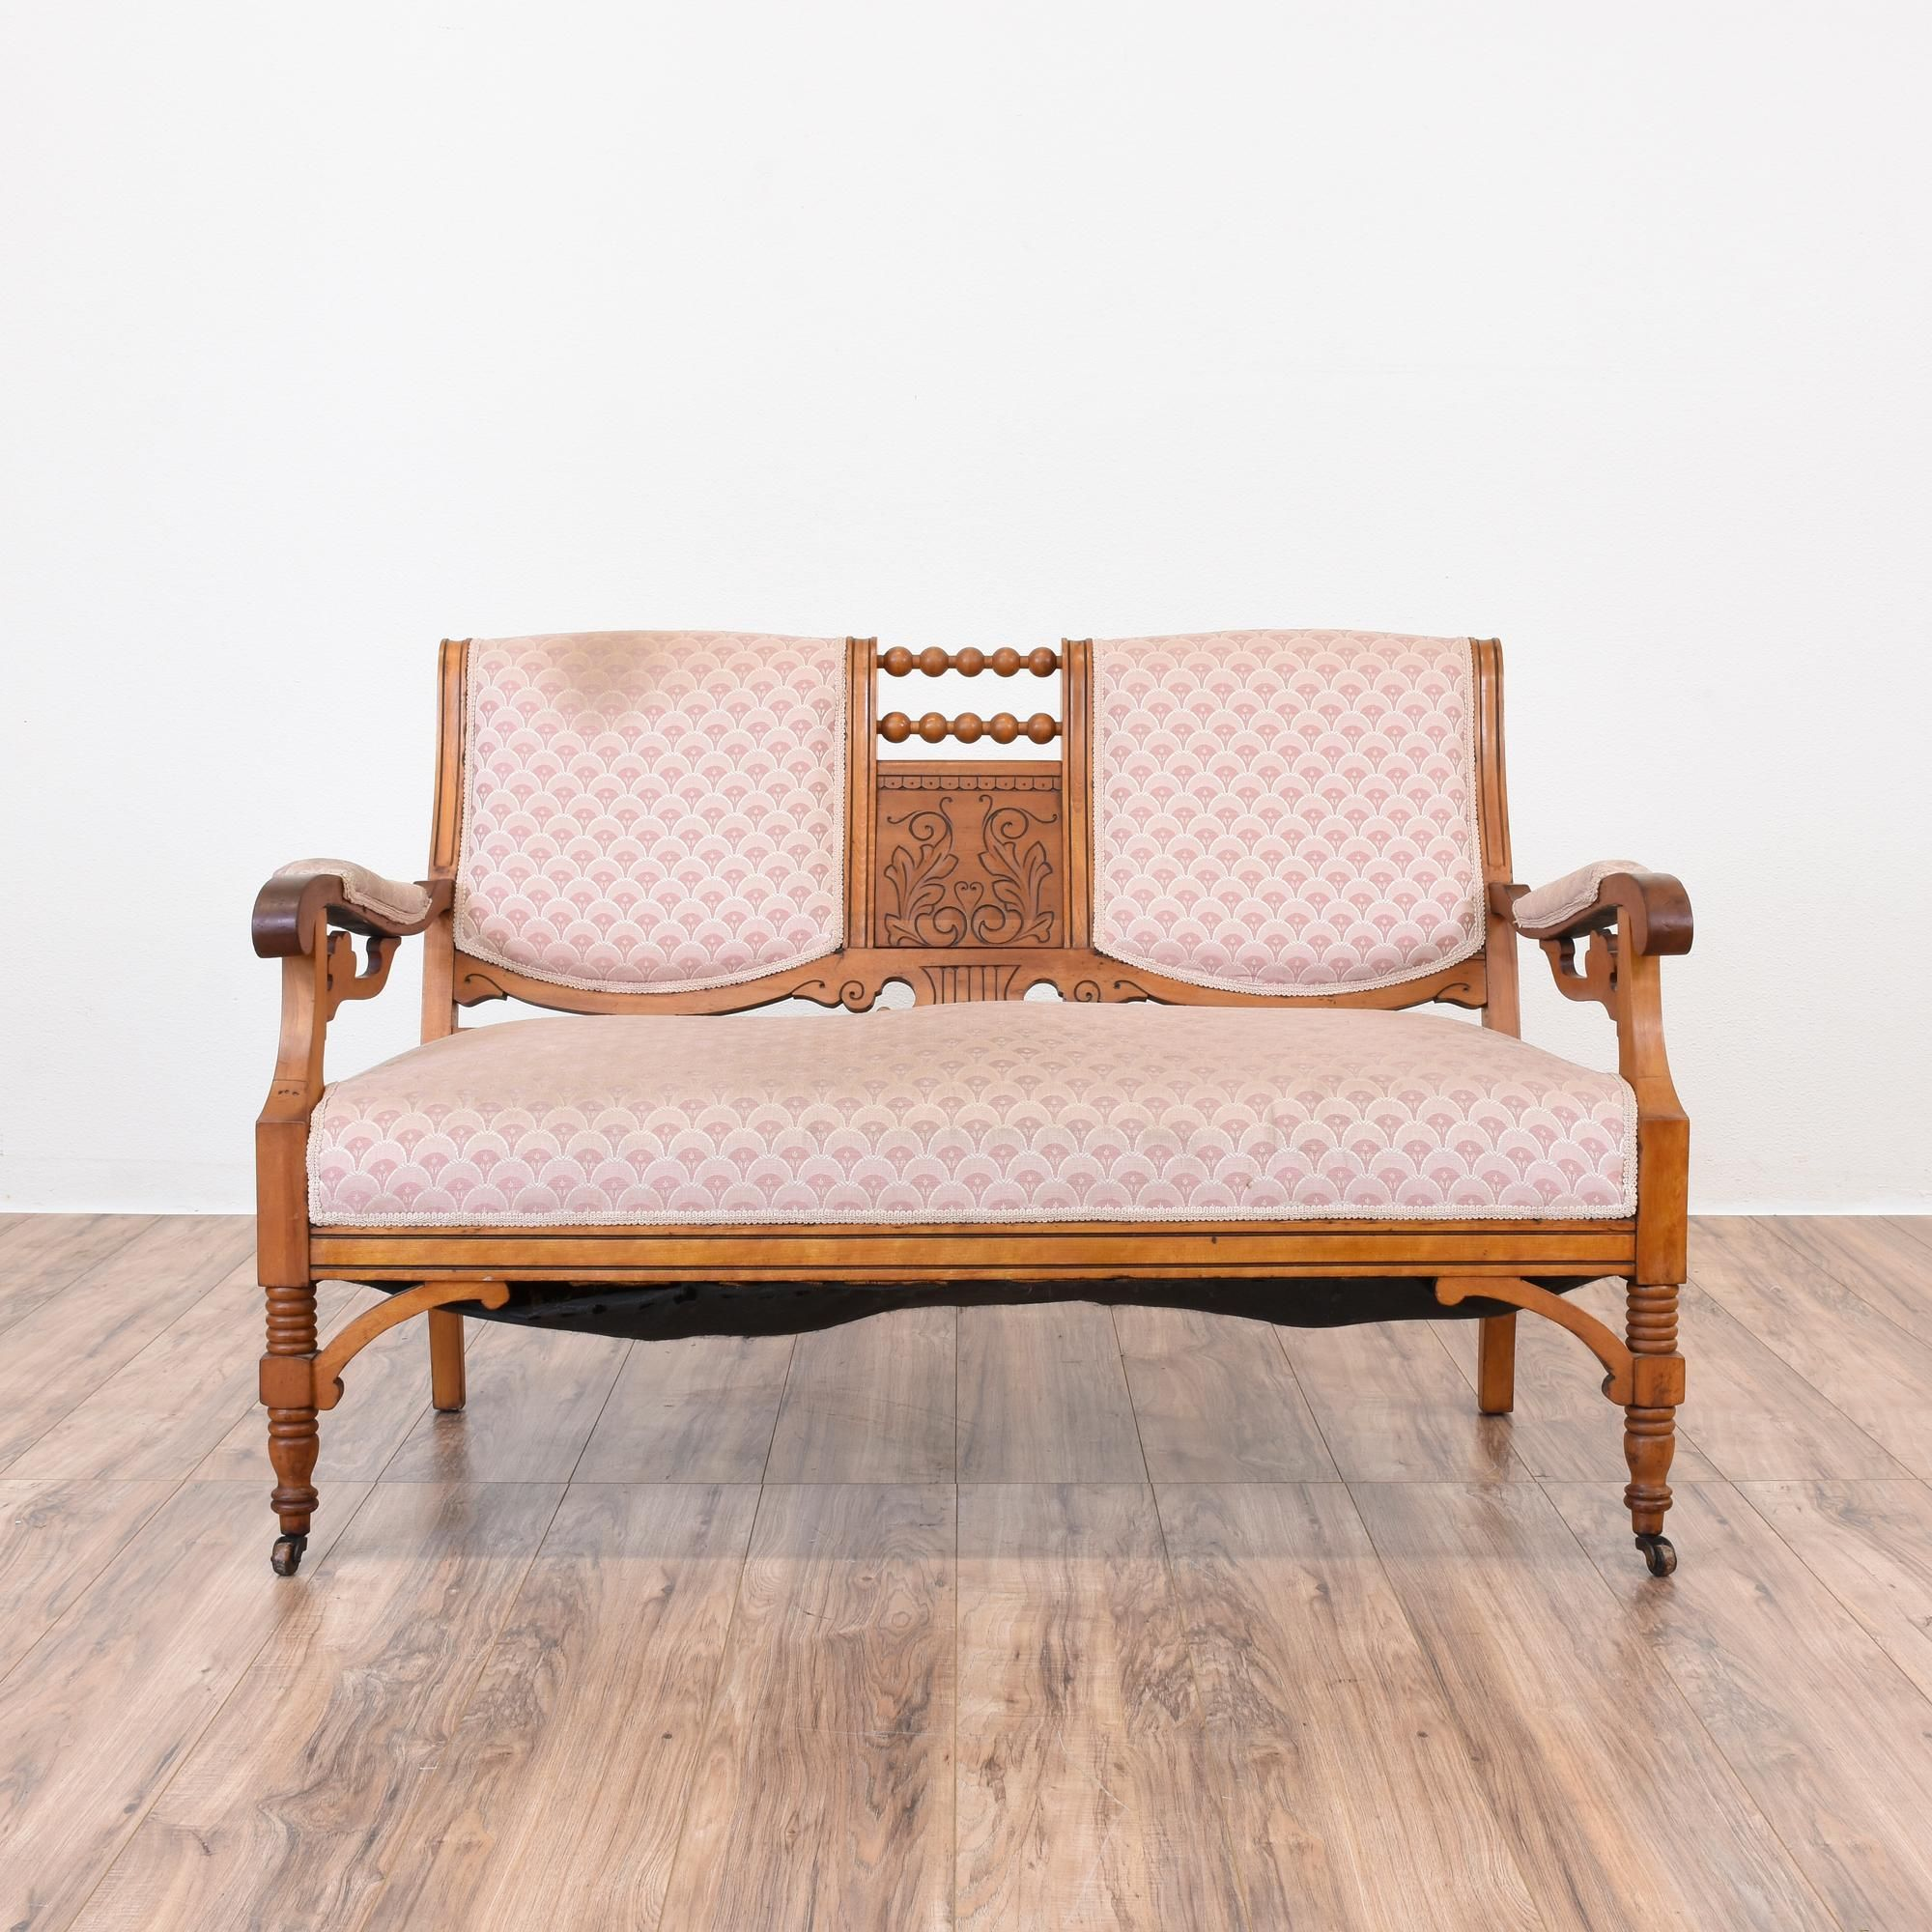 Antique Eastlake Sofa: This Antique Eastlake Settee Is Featured In A Solid Wood